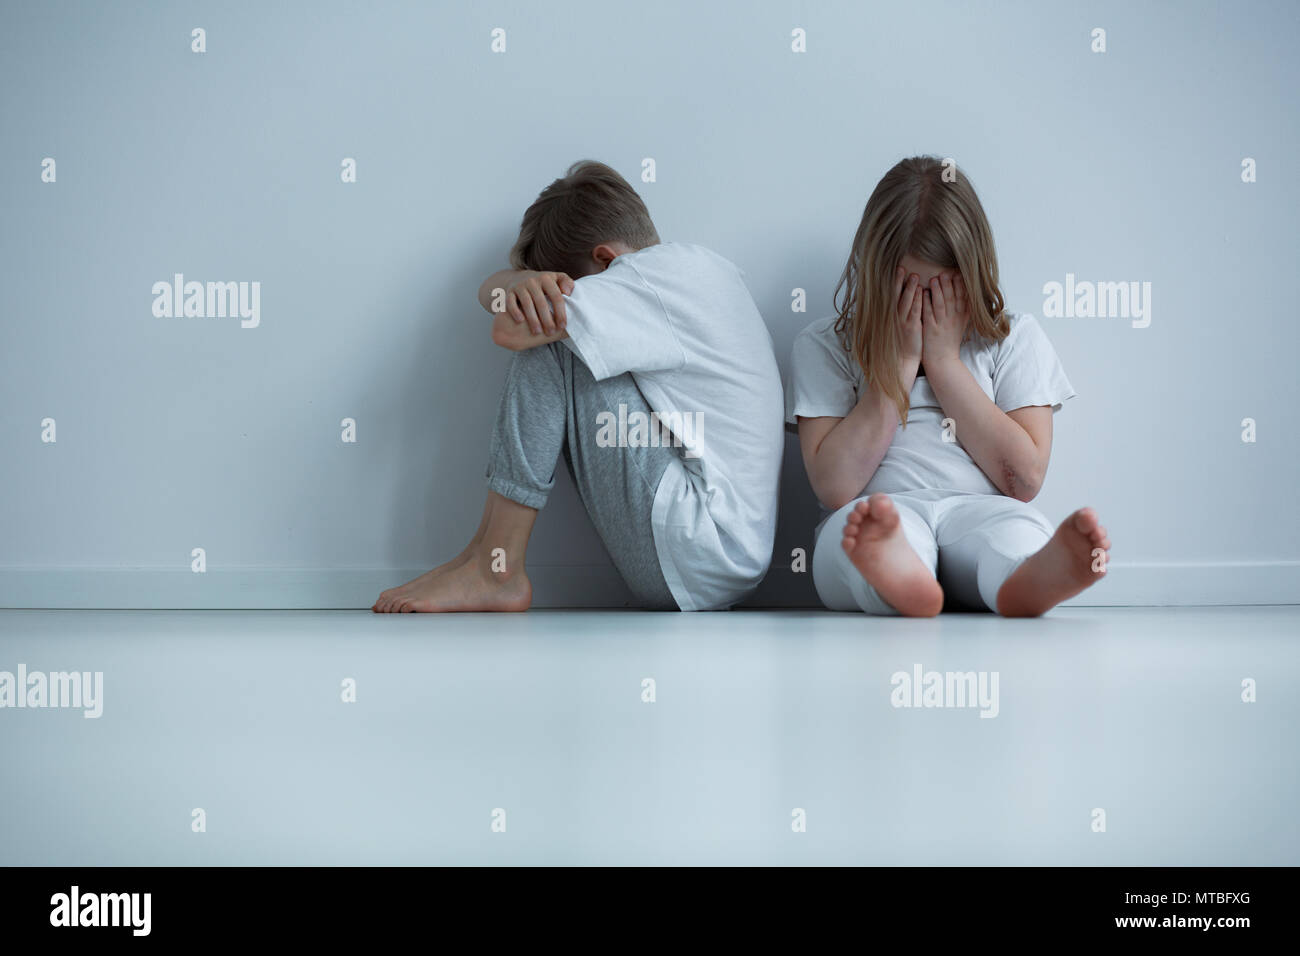 Children living in constant fear - conceptual photo - Stock Image